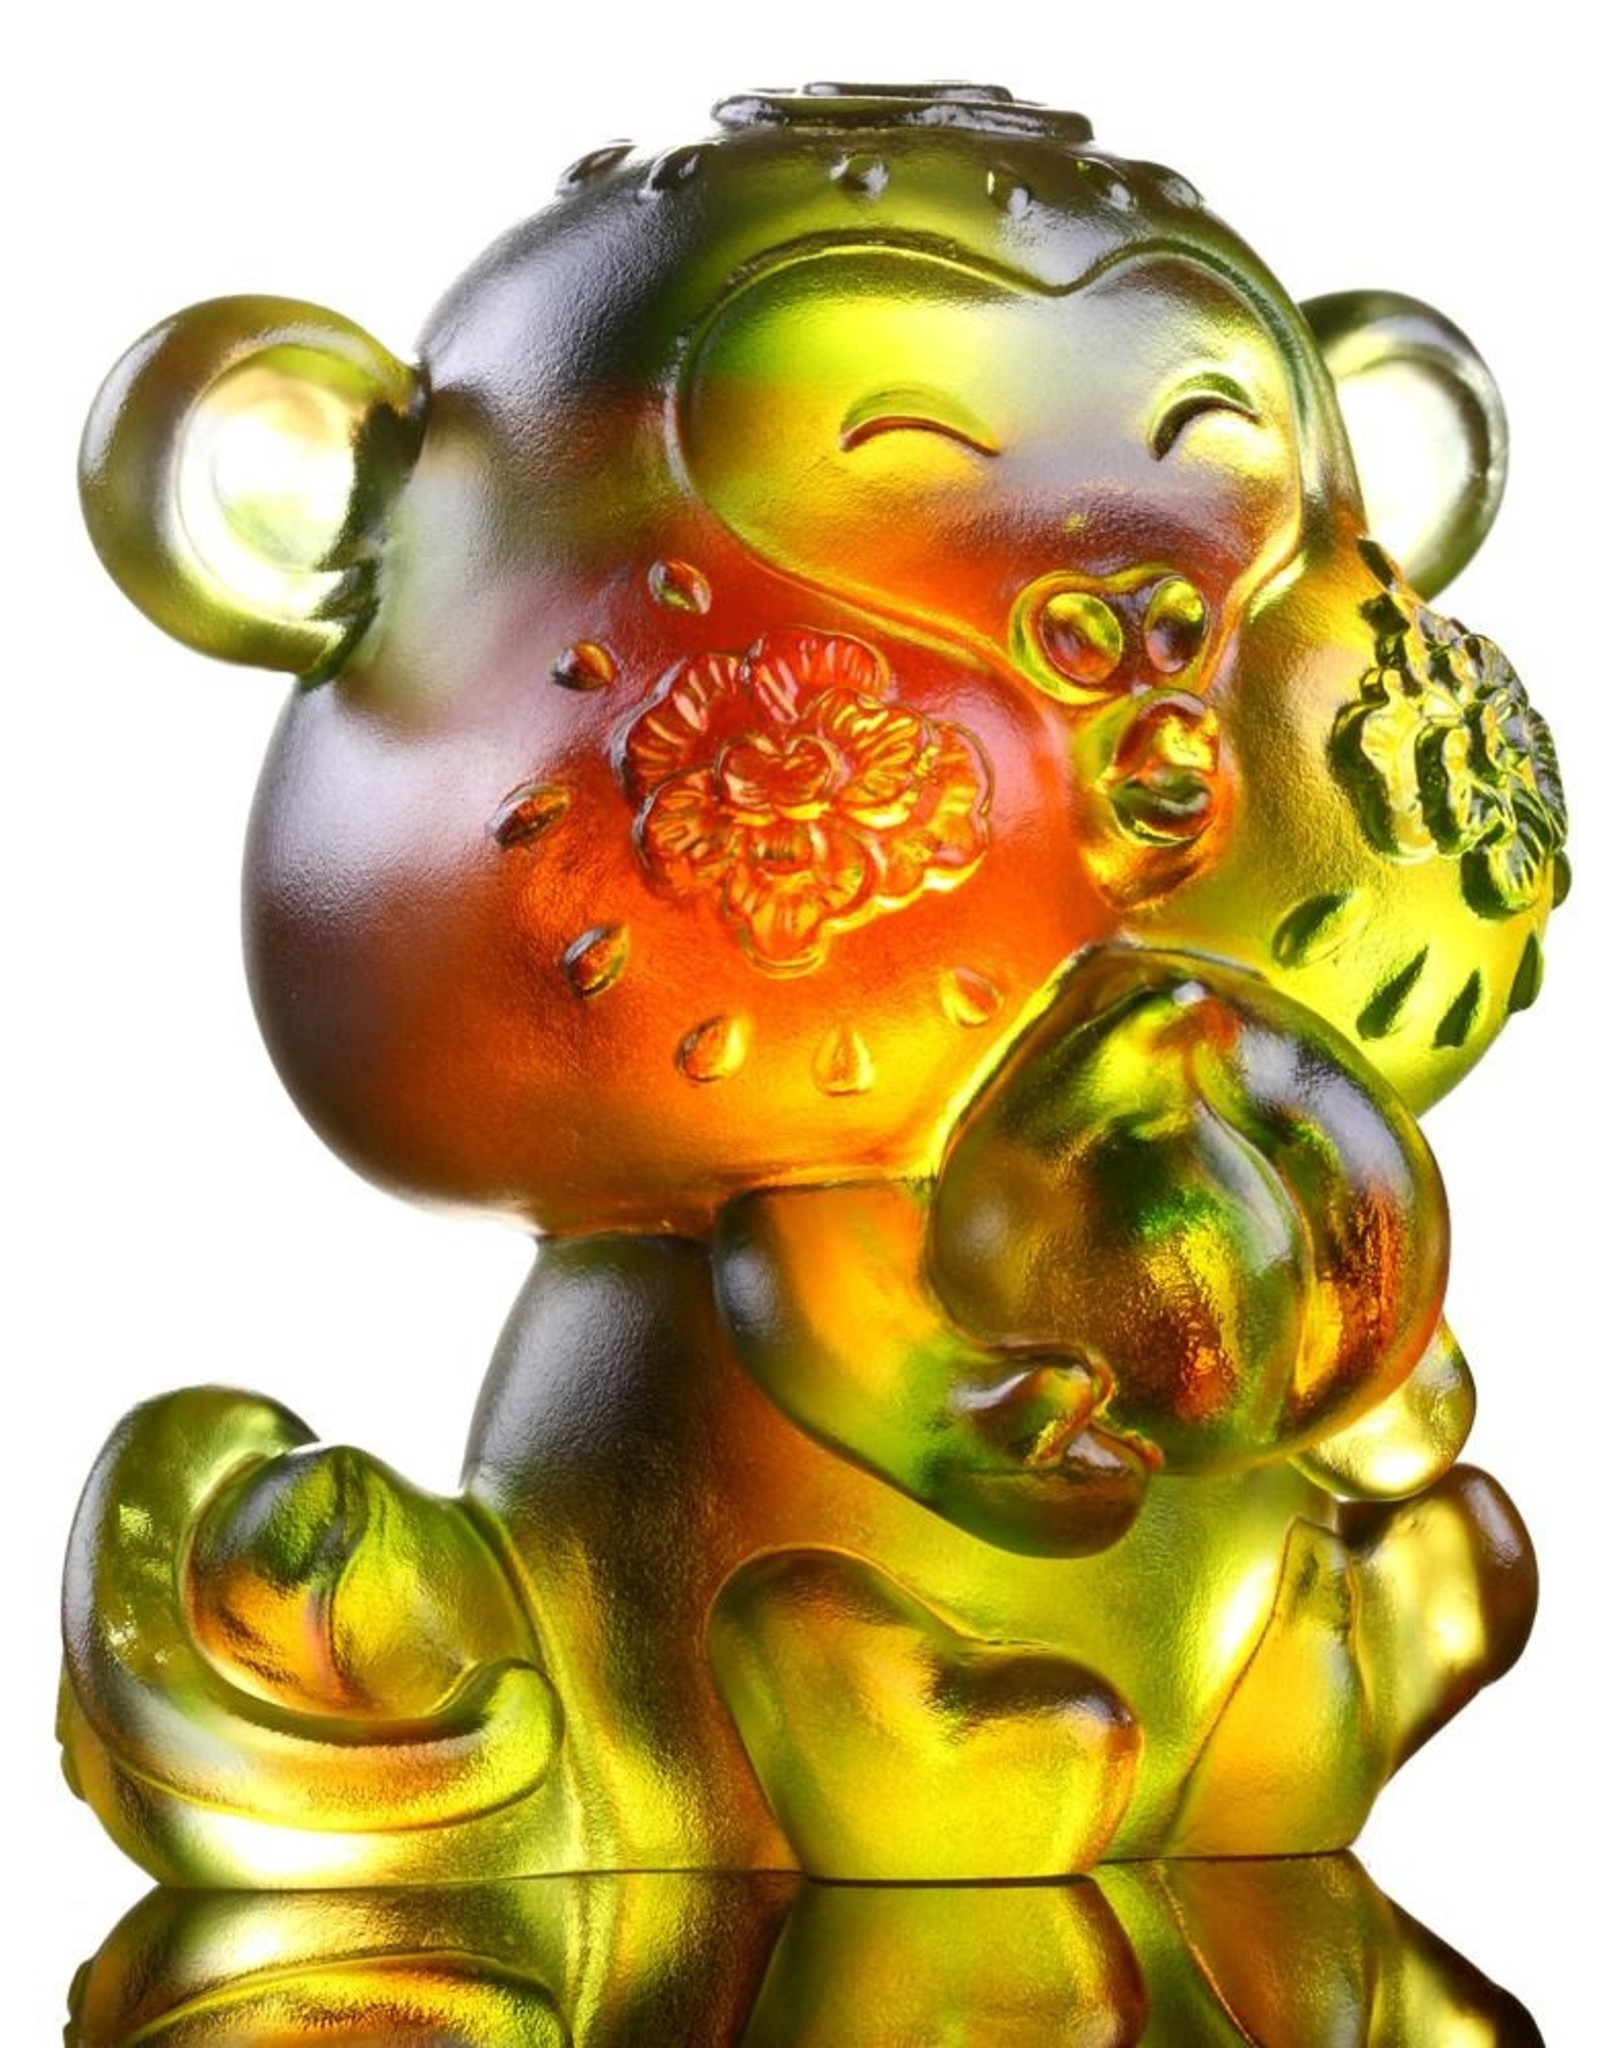 """LIULI Crystal Art Crystal Year of the Monkey """"Little Saint"""" Chinese Zodiac Figurine in Amber/Green (Limited Edition)"""